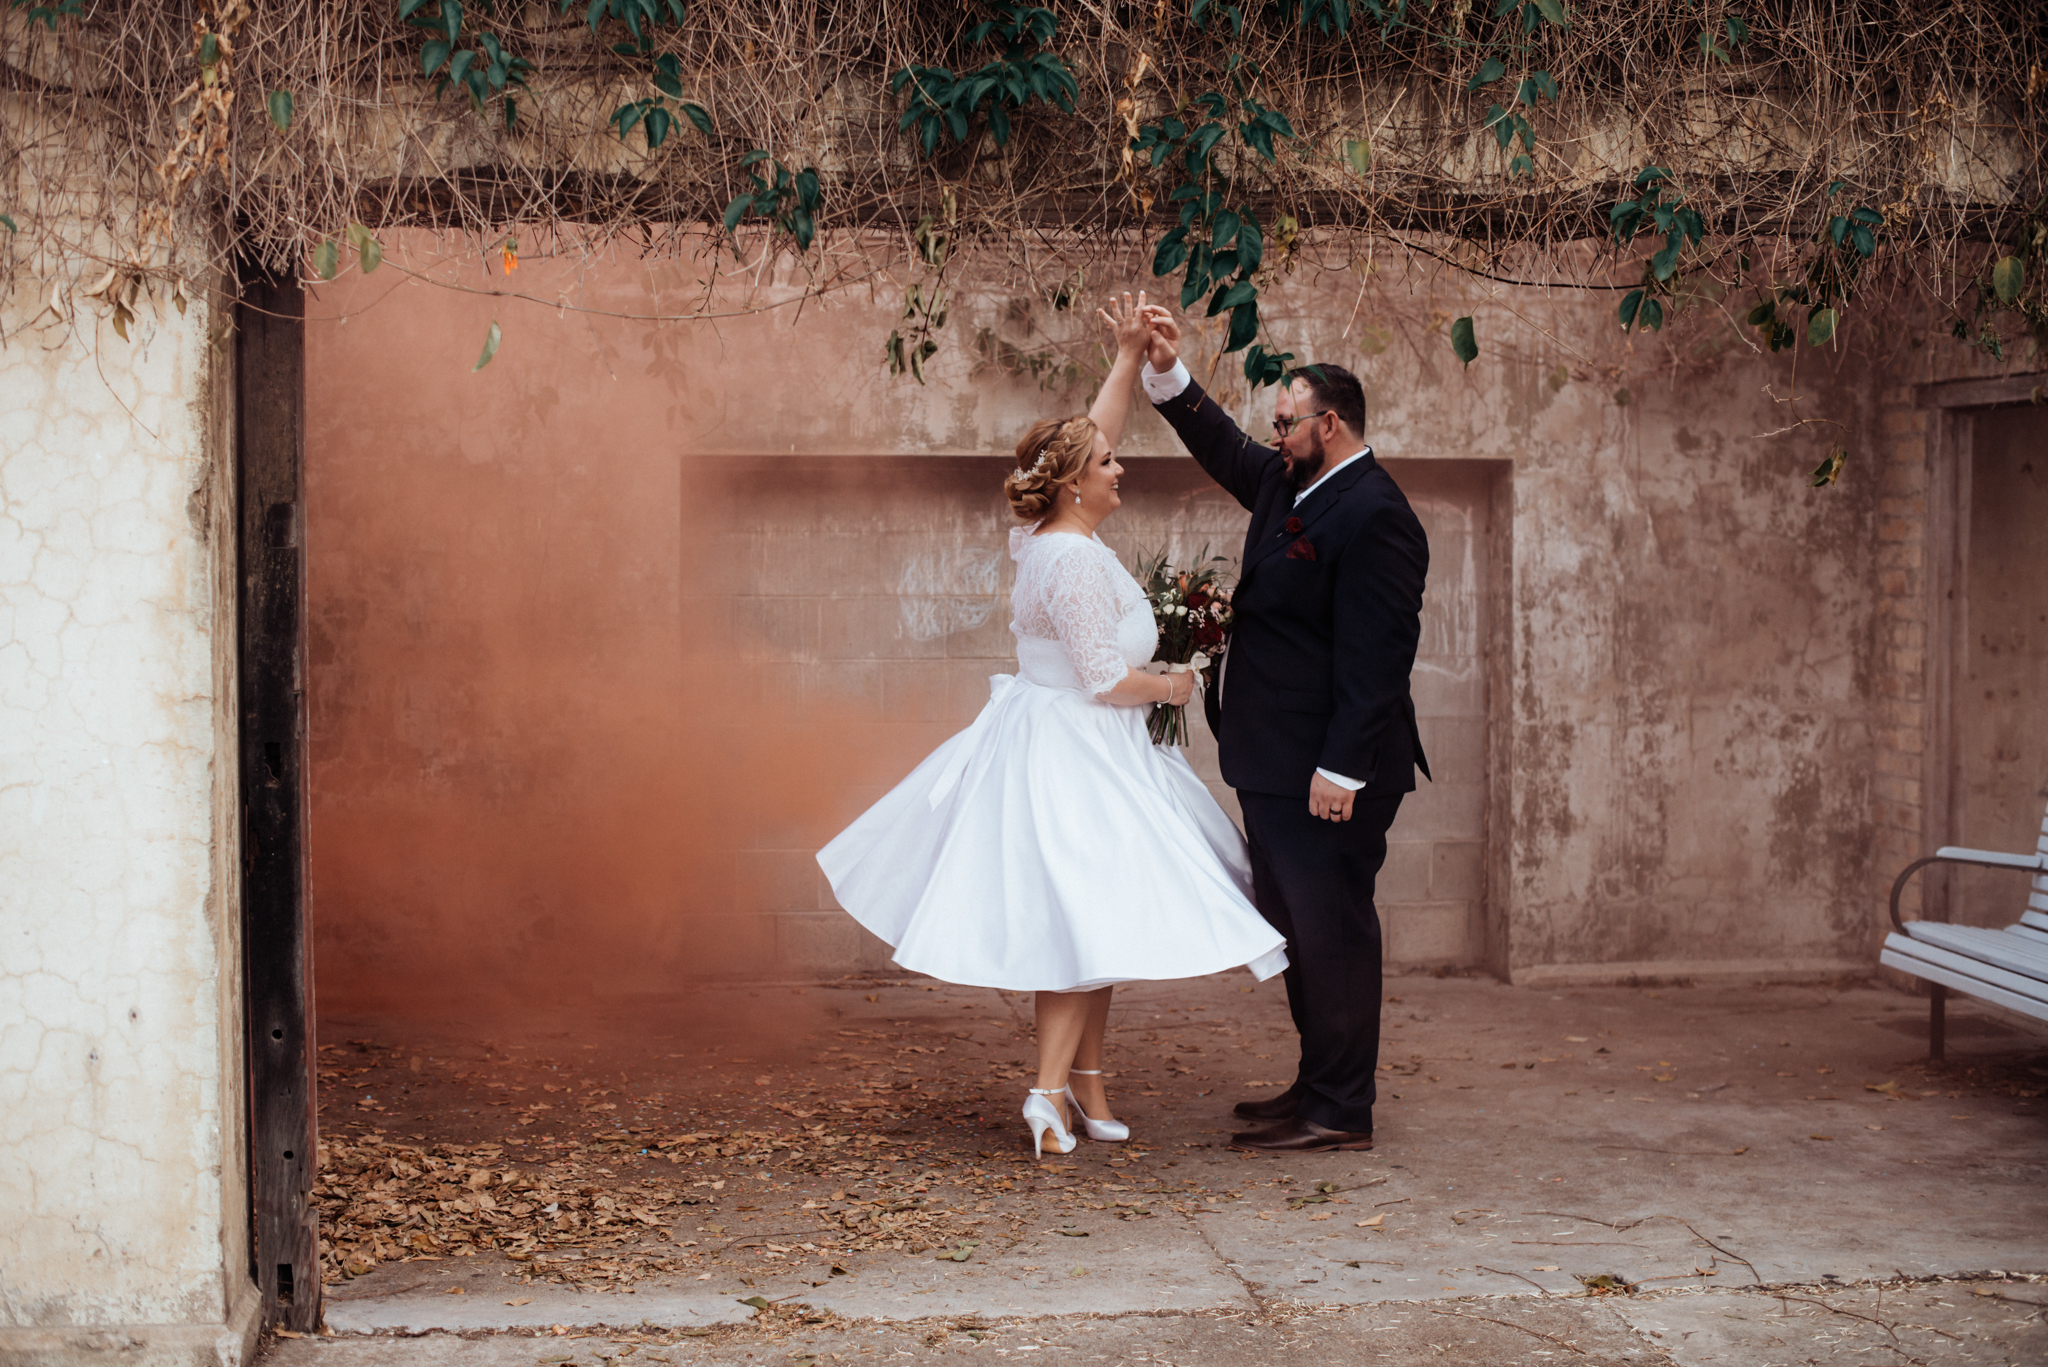 Orange Smoke in the City - It is easy to control the movement and density of the smoke within an enclosed space. An orange smoke bomb was placed against the wall to create a peachy backdrop for these two newlyweds. The smoke bomb was securely placed in a mason jar and was properly disposed off afterwards, leaving no trace behind in this urban public space {more on that below}. A lot of public spaces have regulations for the use of smoke bombs, similar to regulations for the use of fireworks, so be sure to check before shooting.